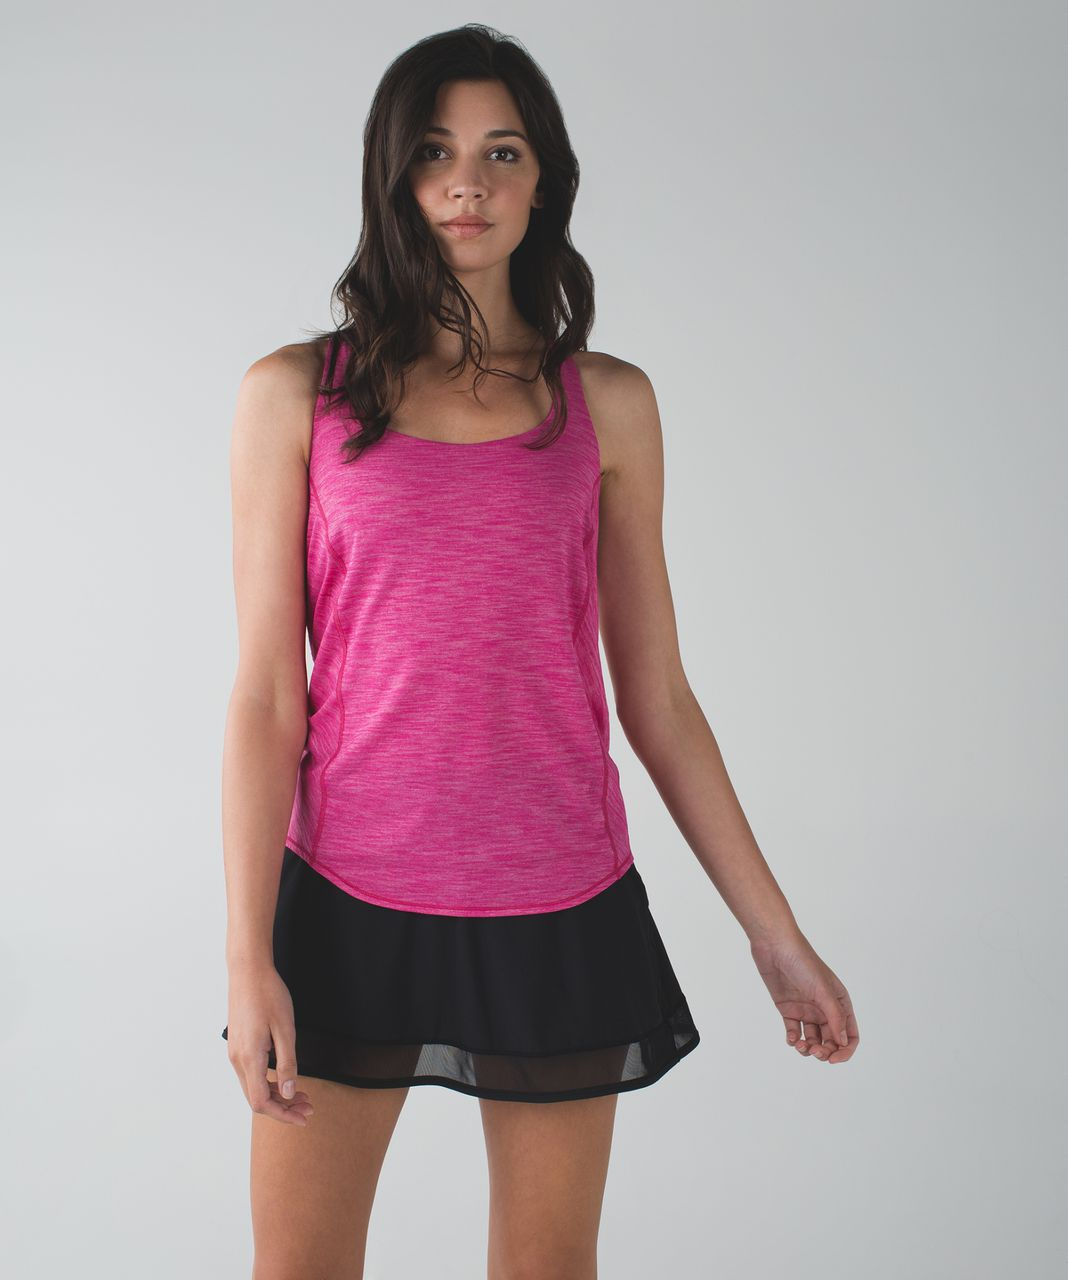 Lululemon Wild Tank - Heathered Jewelled Magenta / Dottie Dash White Black